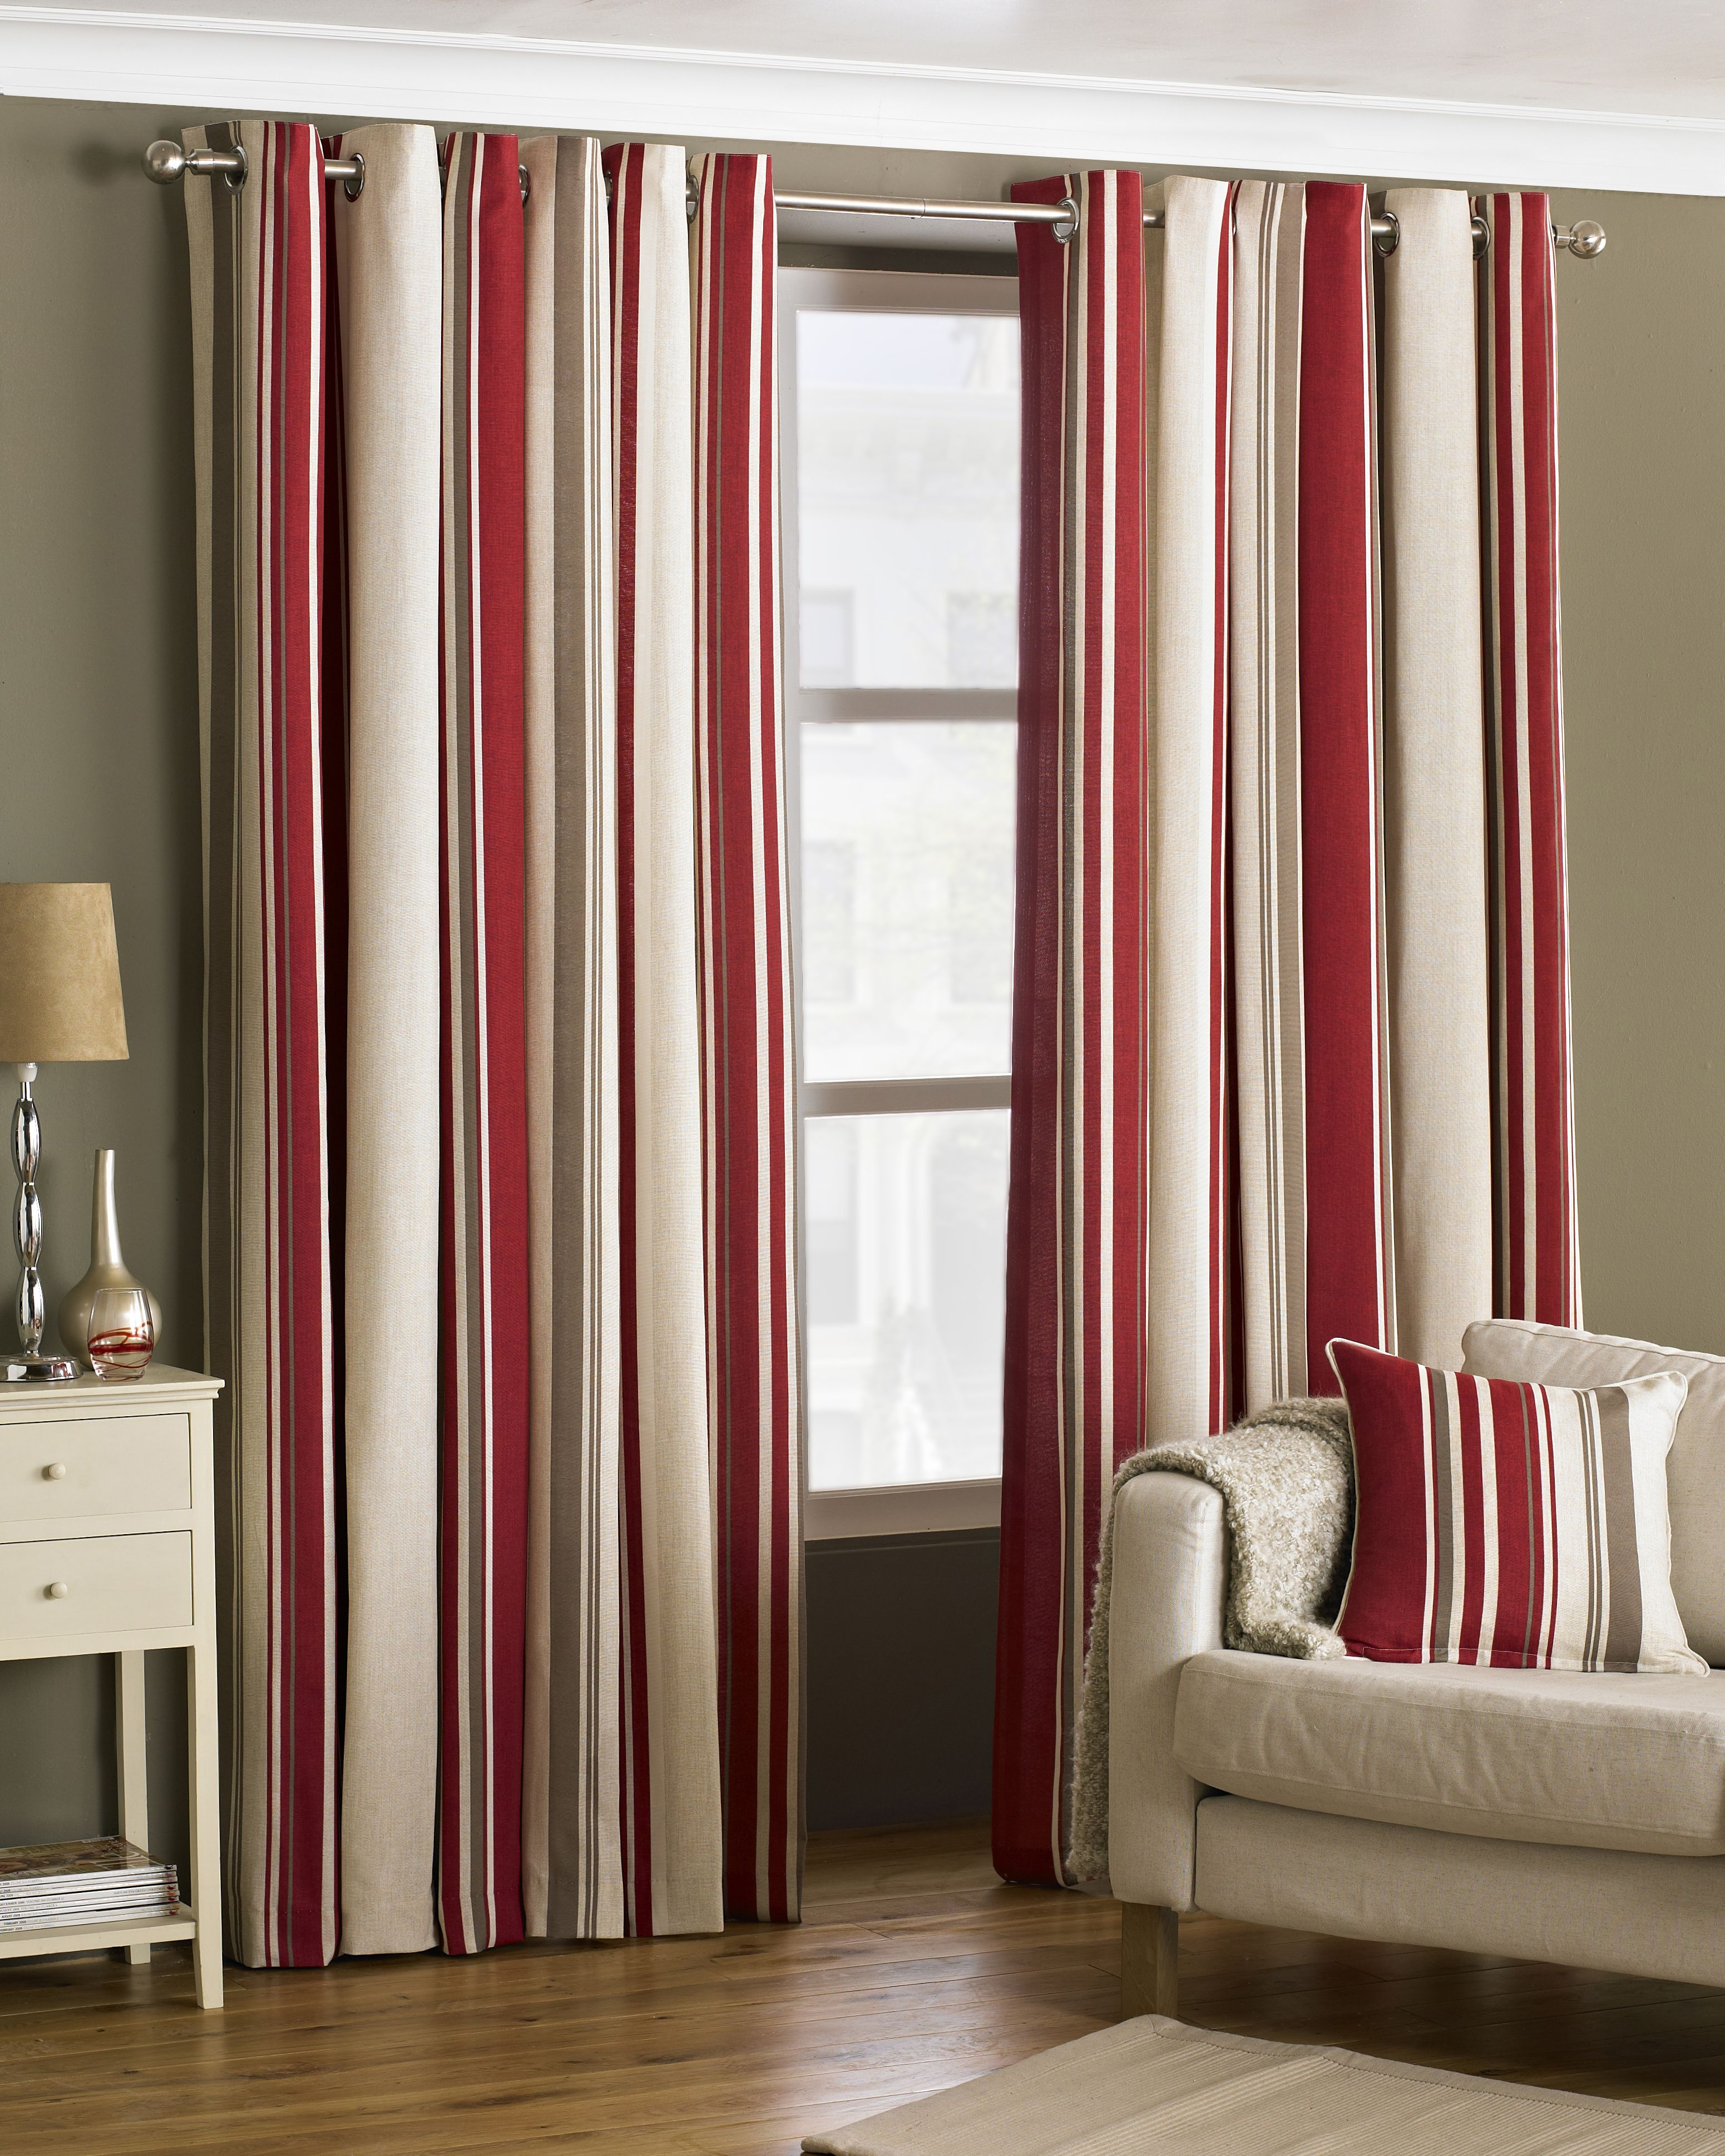 Broadway Striped Eyelet Curtains in Raspberry